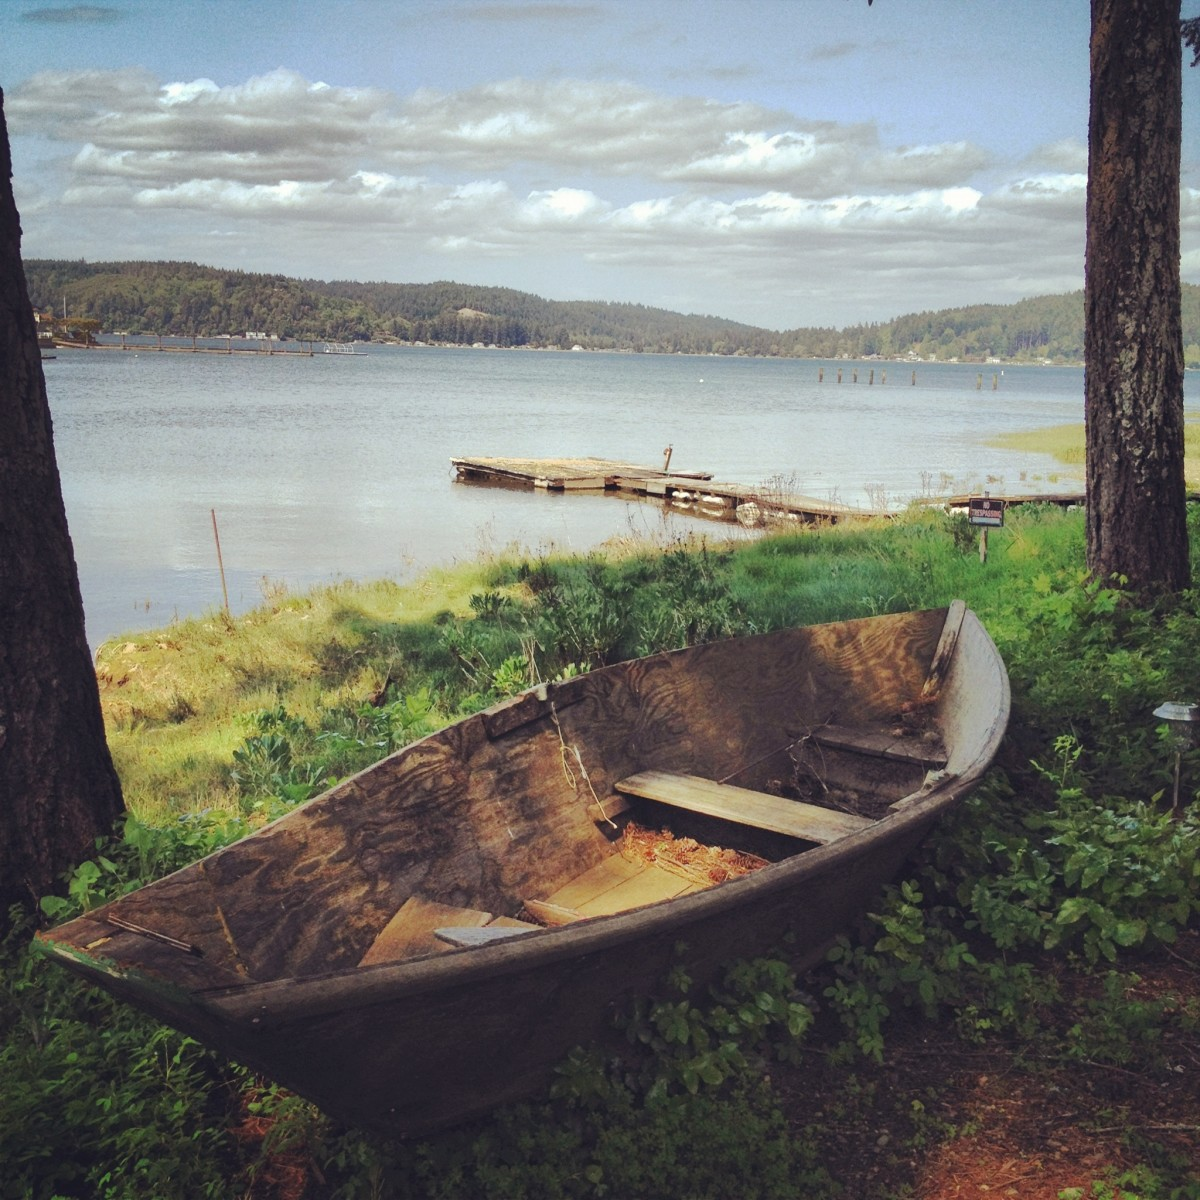 Summers on the Hood Canal are peaceful and relaxing. Bill Gates retired to his summer home on the Hood Canal in Union, next to the Alderbrook Resort.